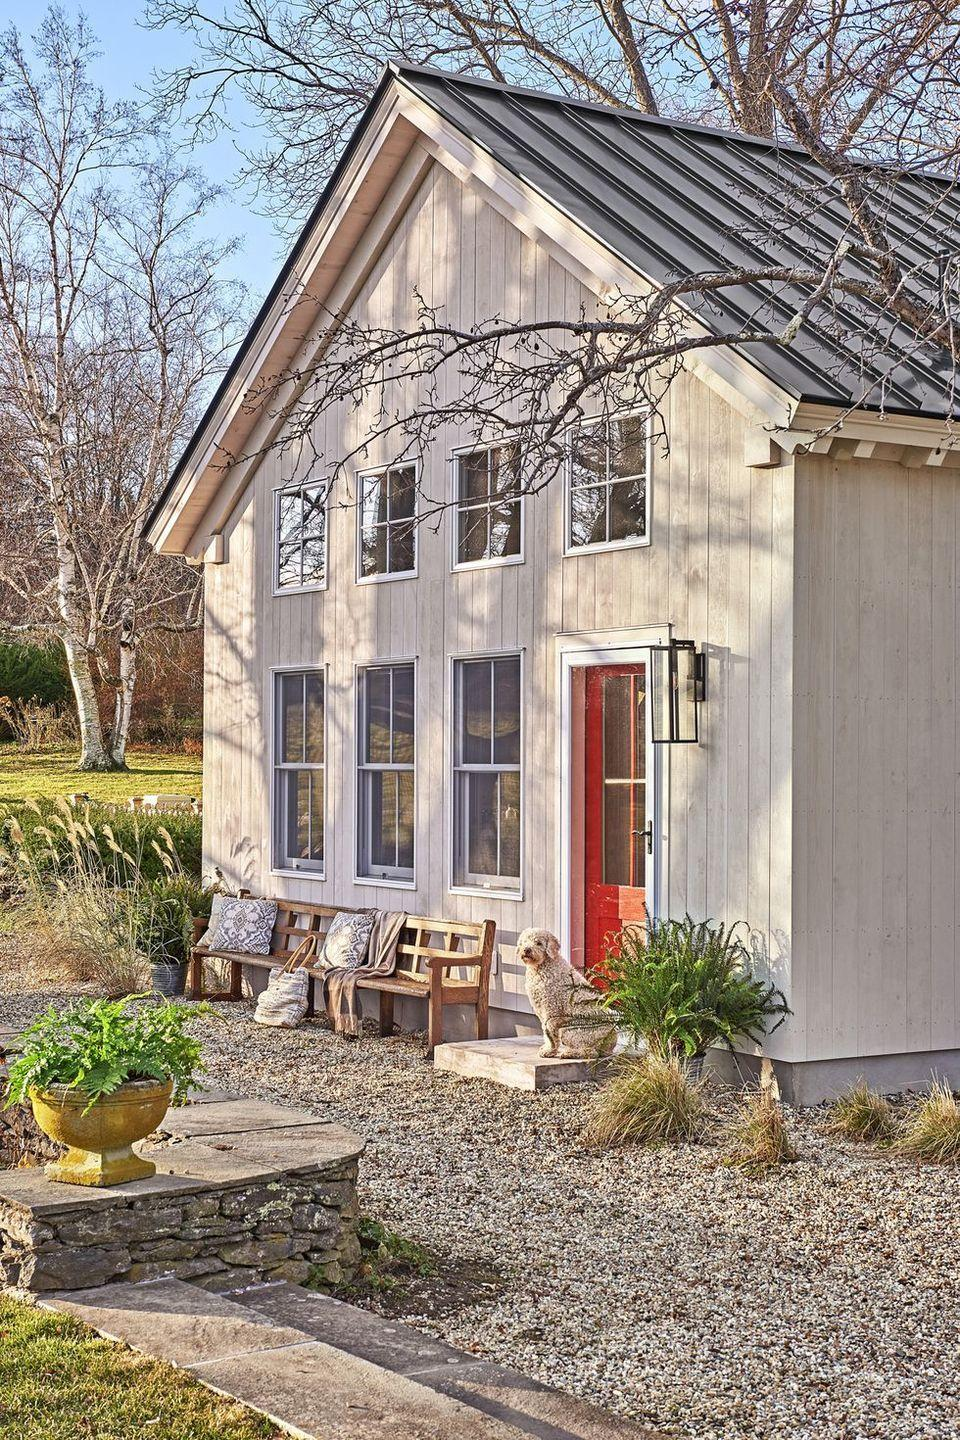 """<p>Red is always an easy way to bring attention to your front door. Try a bright shade against neutrals, like this clapboard siding and metal roof.</p><p><a class=""""link rapid-noclick-resp"""" href=""""https://go.redirectingat.com?id=74968X1596630&url=https%3A%2F%2Fwww.homedepot.com%2Fp%2FRust-Oleum-Painter-s-Touch-32-oz-Ultra-Cover-Gloss-Apple-Red-General-Purpose-Paint-1966502%2F100209277&sref=https%3A%2F%2Fwww.countryliving.com%2Fhome-design%2Fcolor%2Fg31158913%2Ffront-door-colors%2F"""" rel=""""nofollow noopener"""" target=""""_blank"""" data-ylk=""""slk:SHOP RED PAINT"""">SHOP RED PAINT</a></p>"""